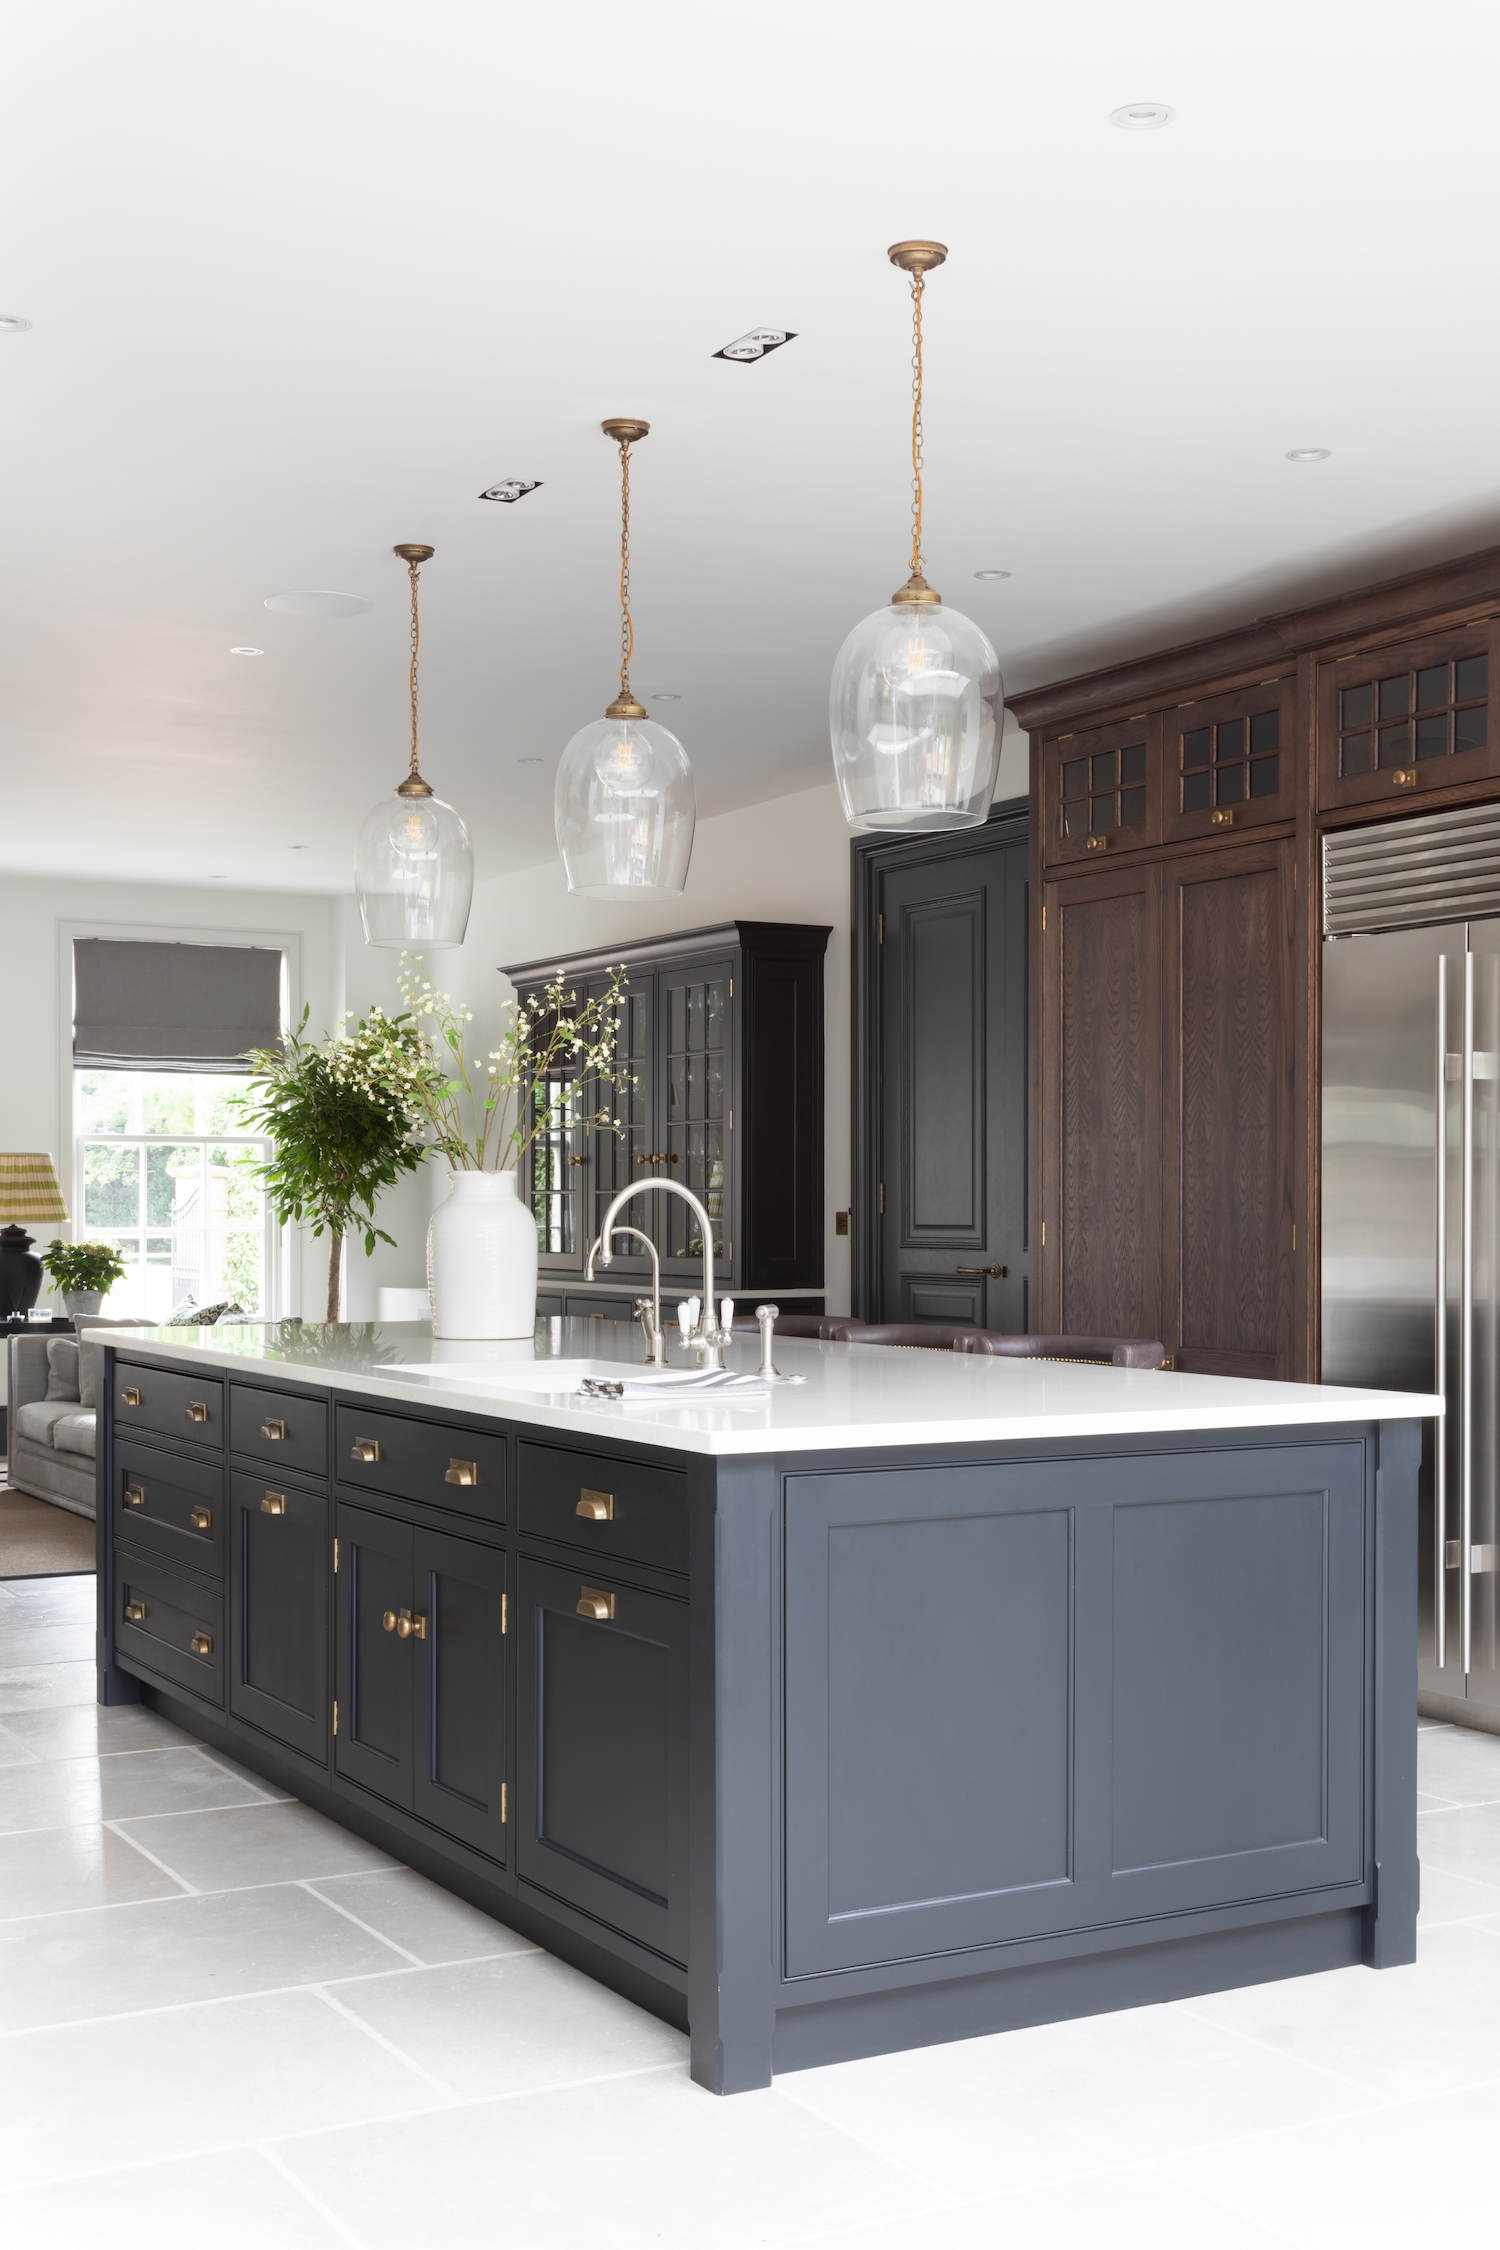 Jim Lawrence Pendant Lighting For Kitchen Islands Humphrey Munson Kitchens